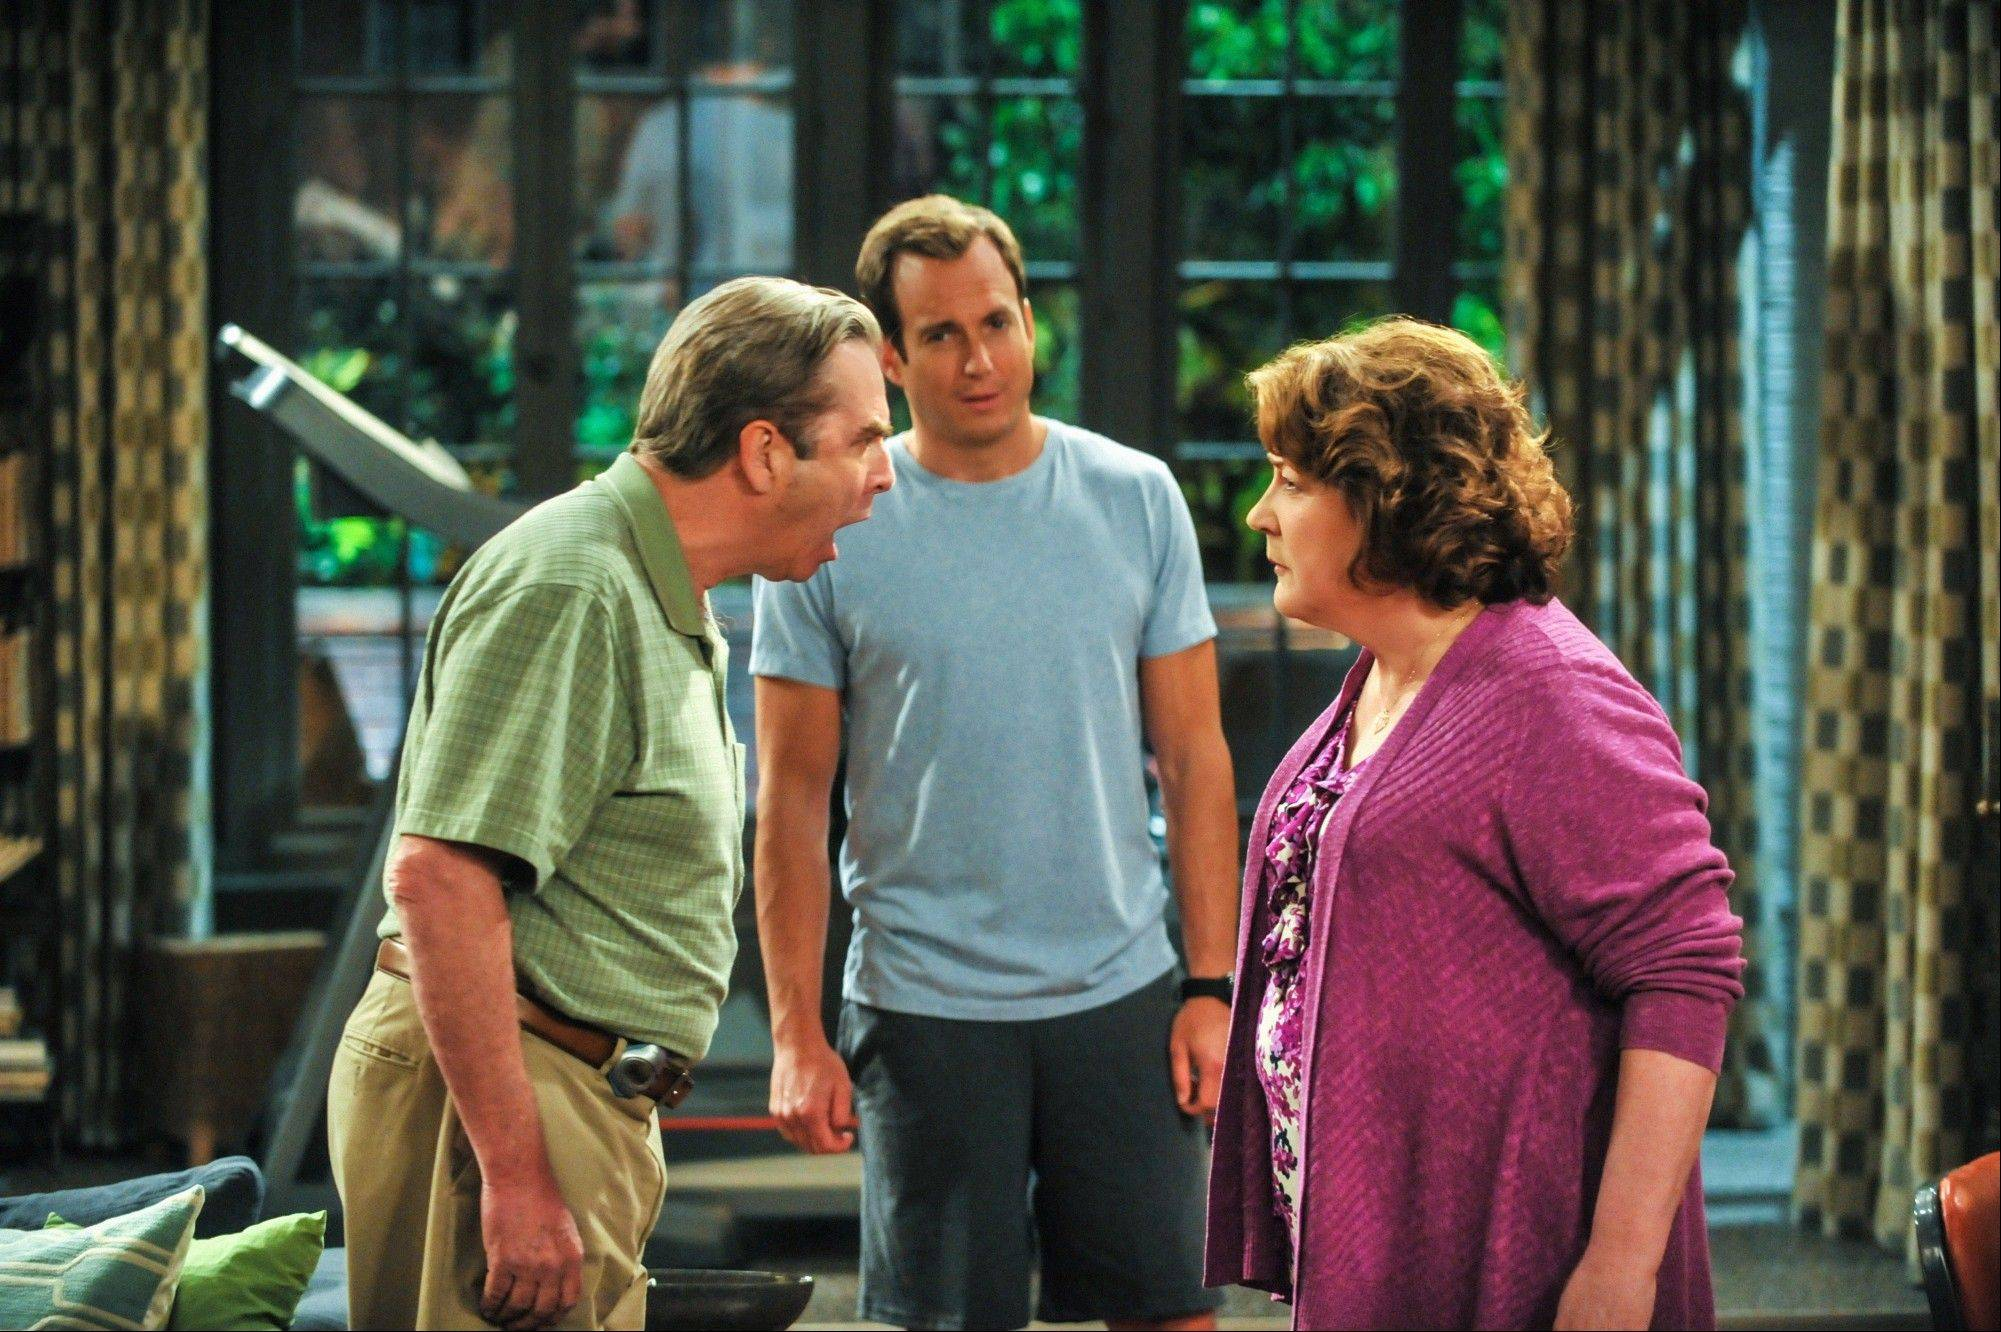 Beau Bridges, left, Will Arnett and Margo Martindale star in the CBS comedy �The Millers,� which debuts Thursday. Arnett and Martindale play a son and mother who become unlikely roommates after marital breakups.